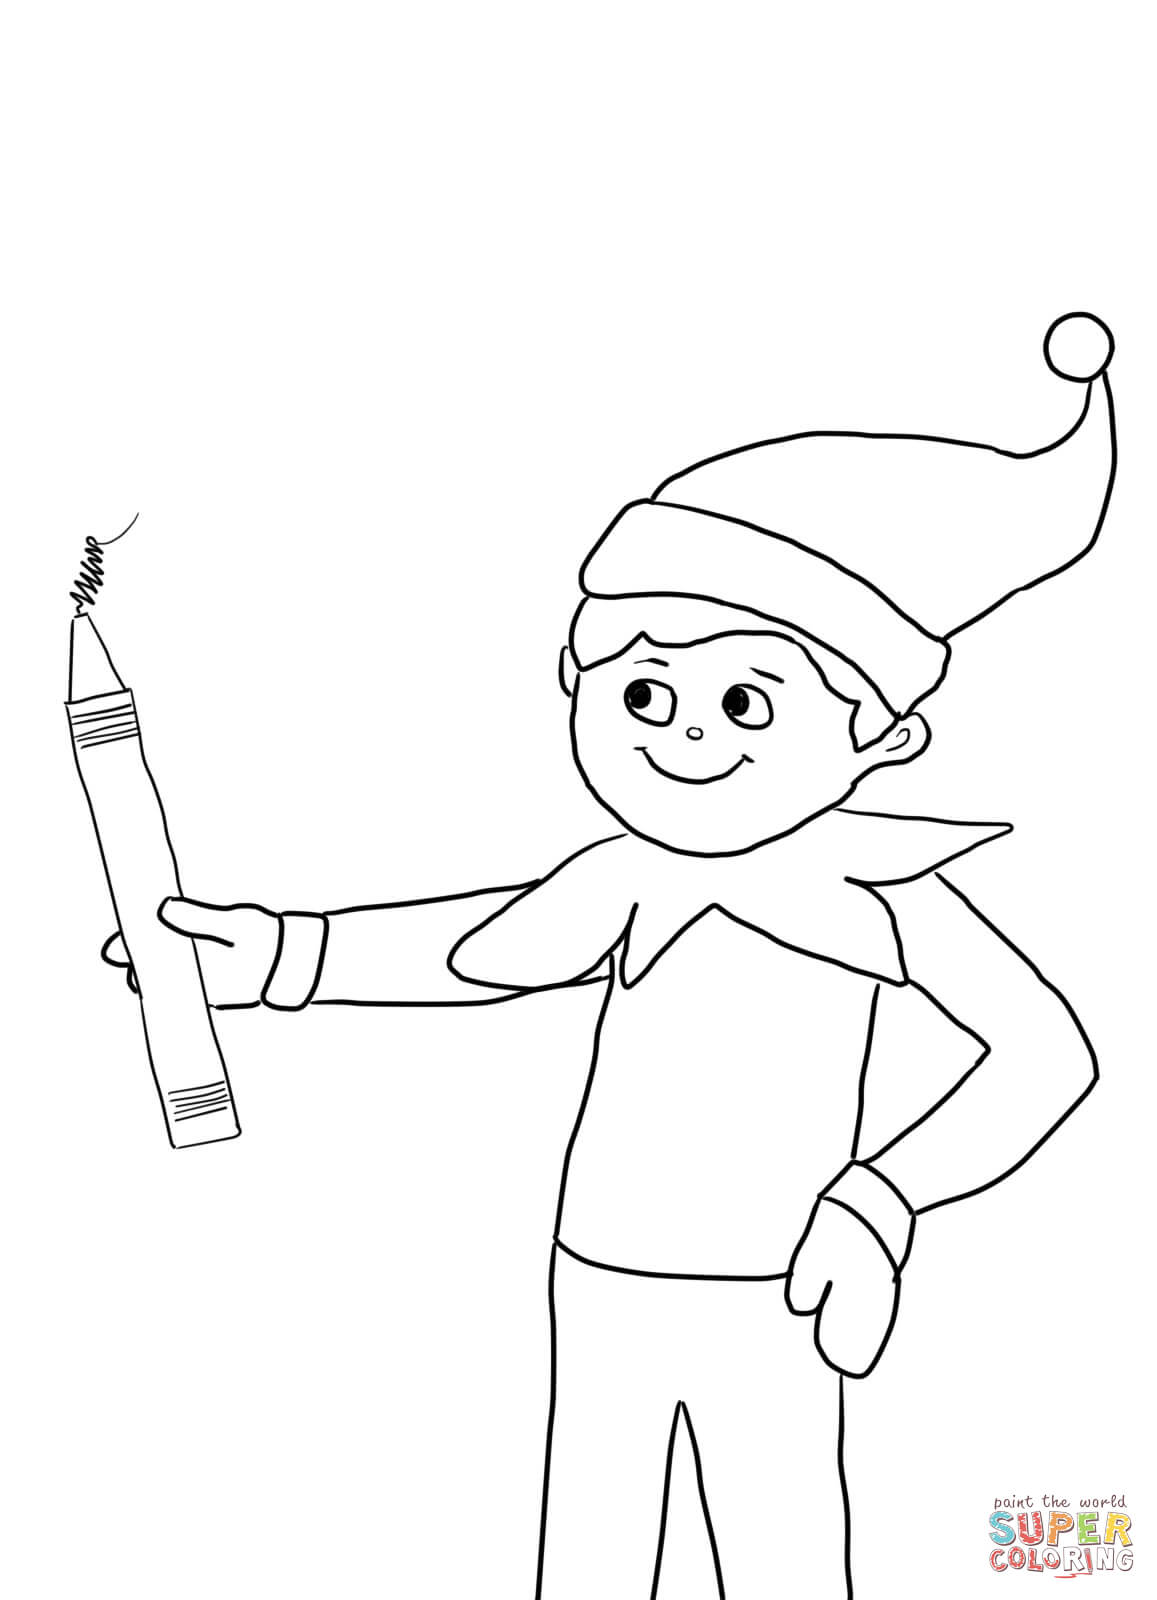 elf-on-the-shelf-coloring-page-0019-q1